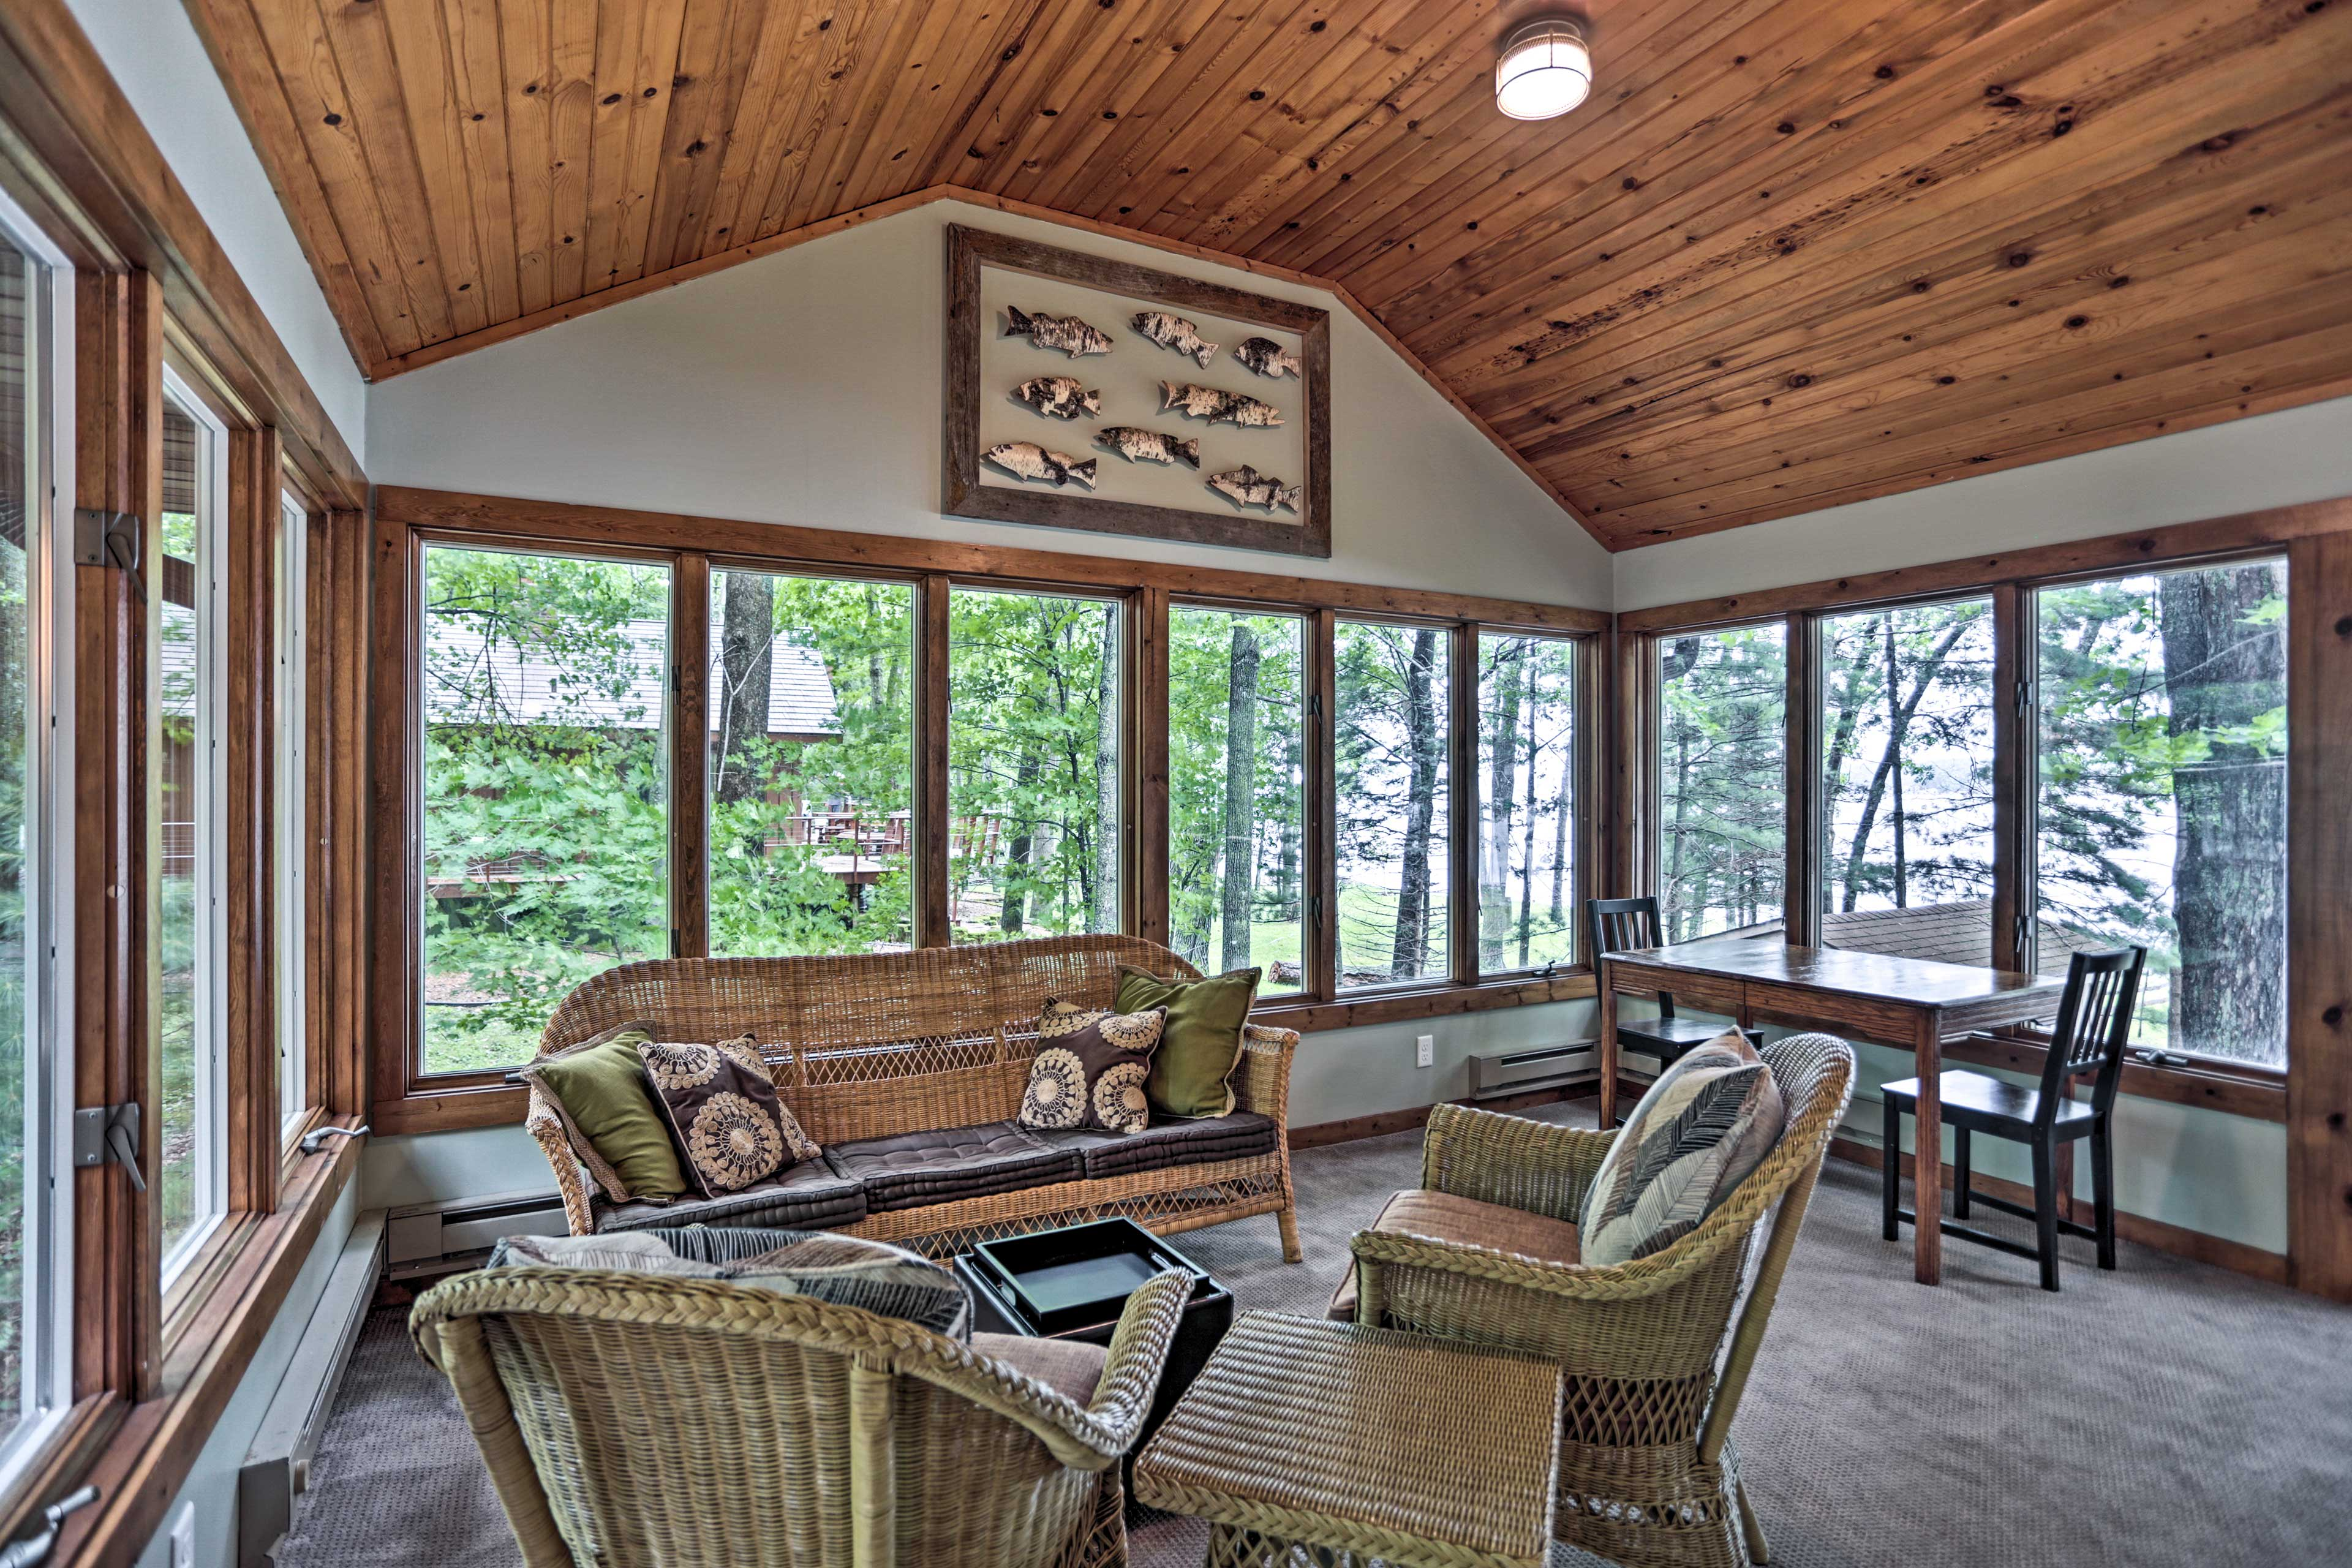 The newly renovated 3-bed, 3-bath getaway has accommodations for 7 guests.